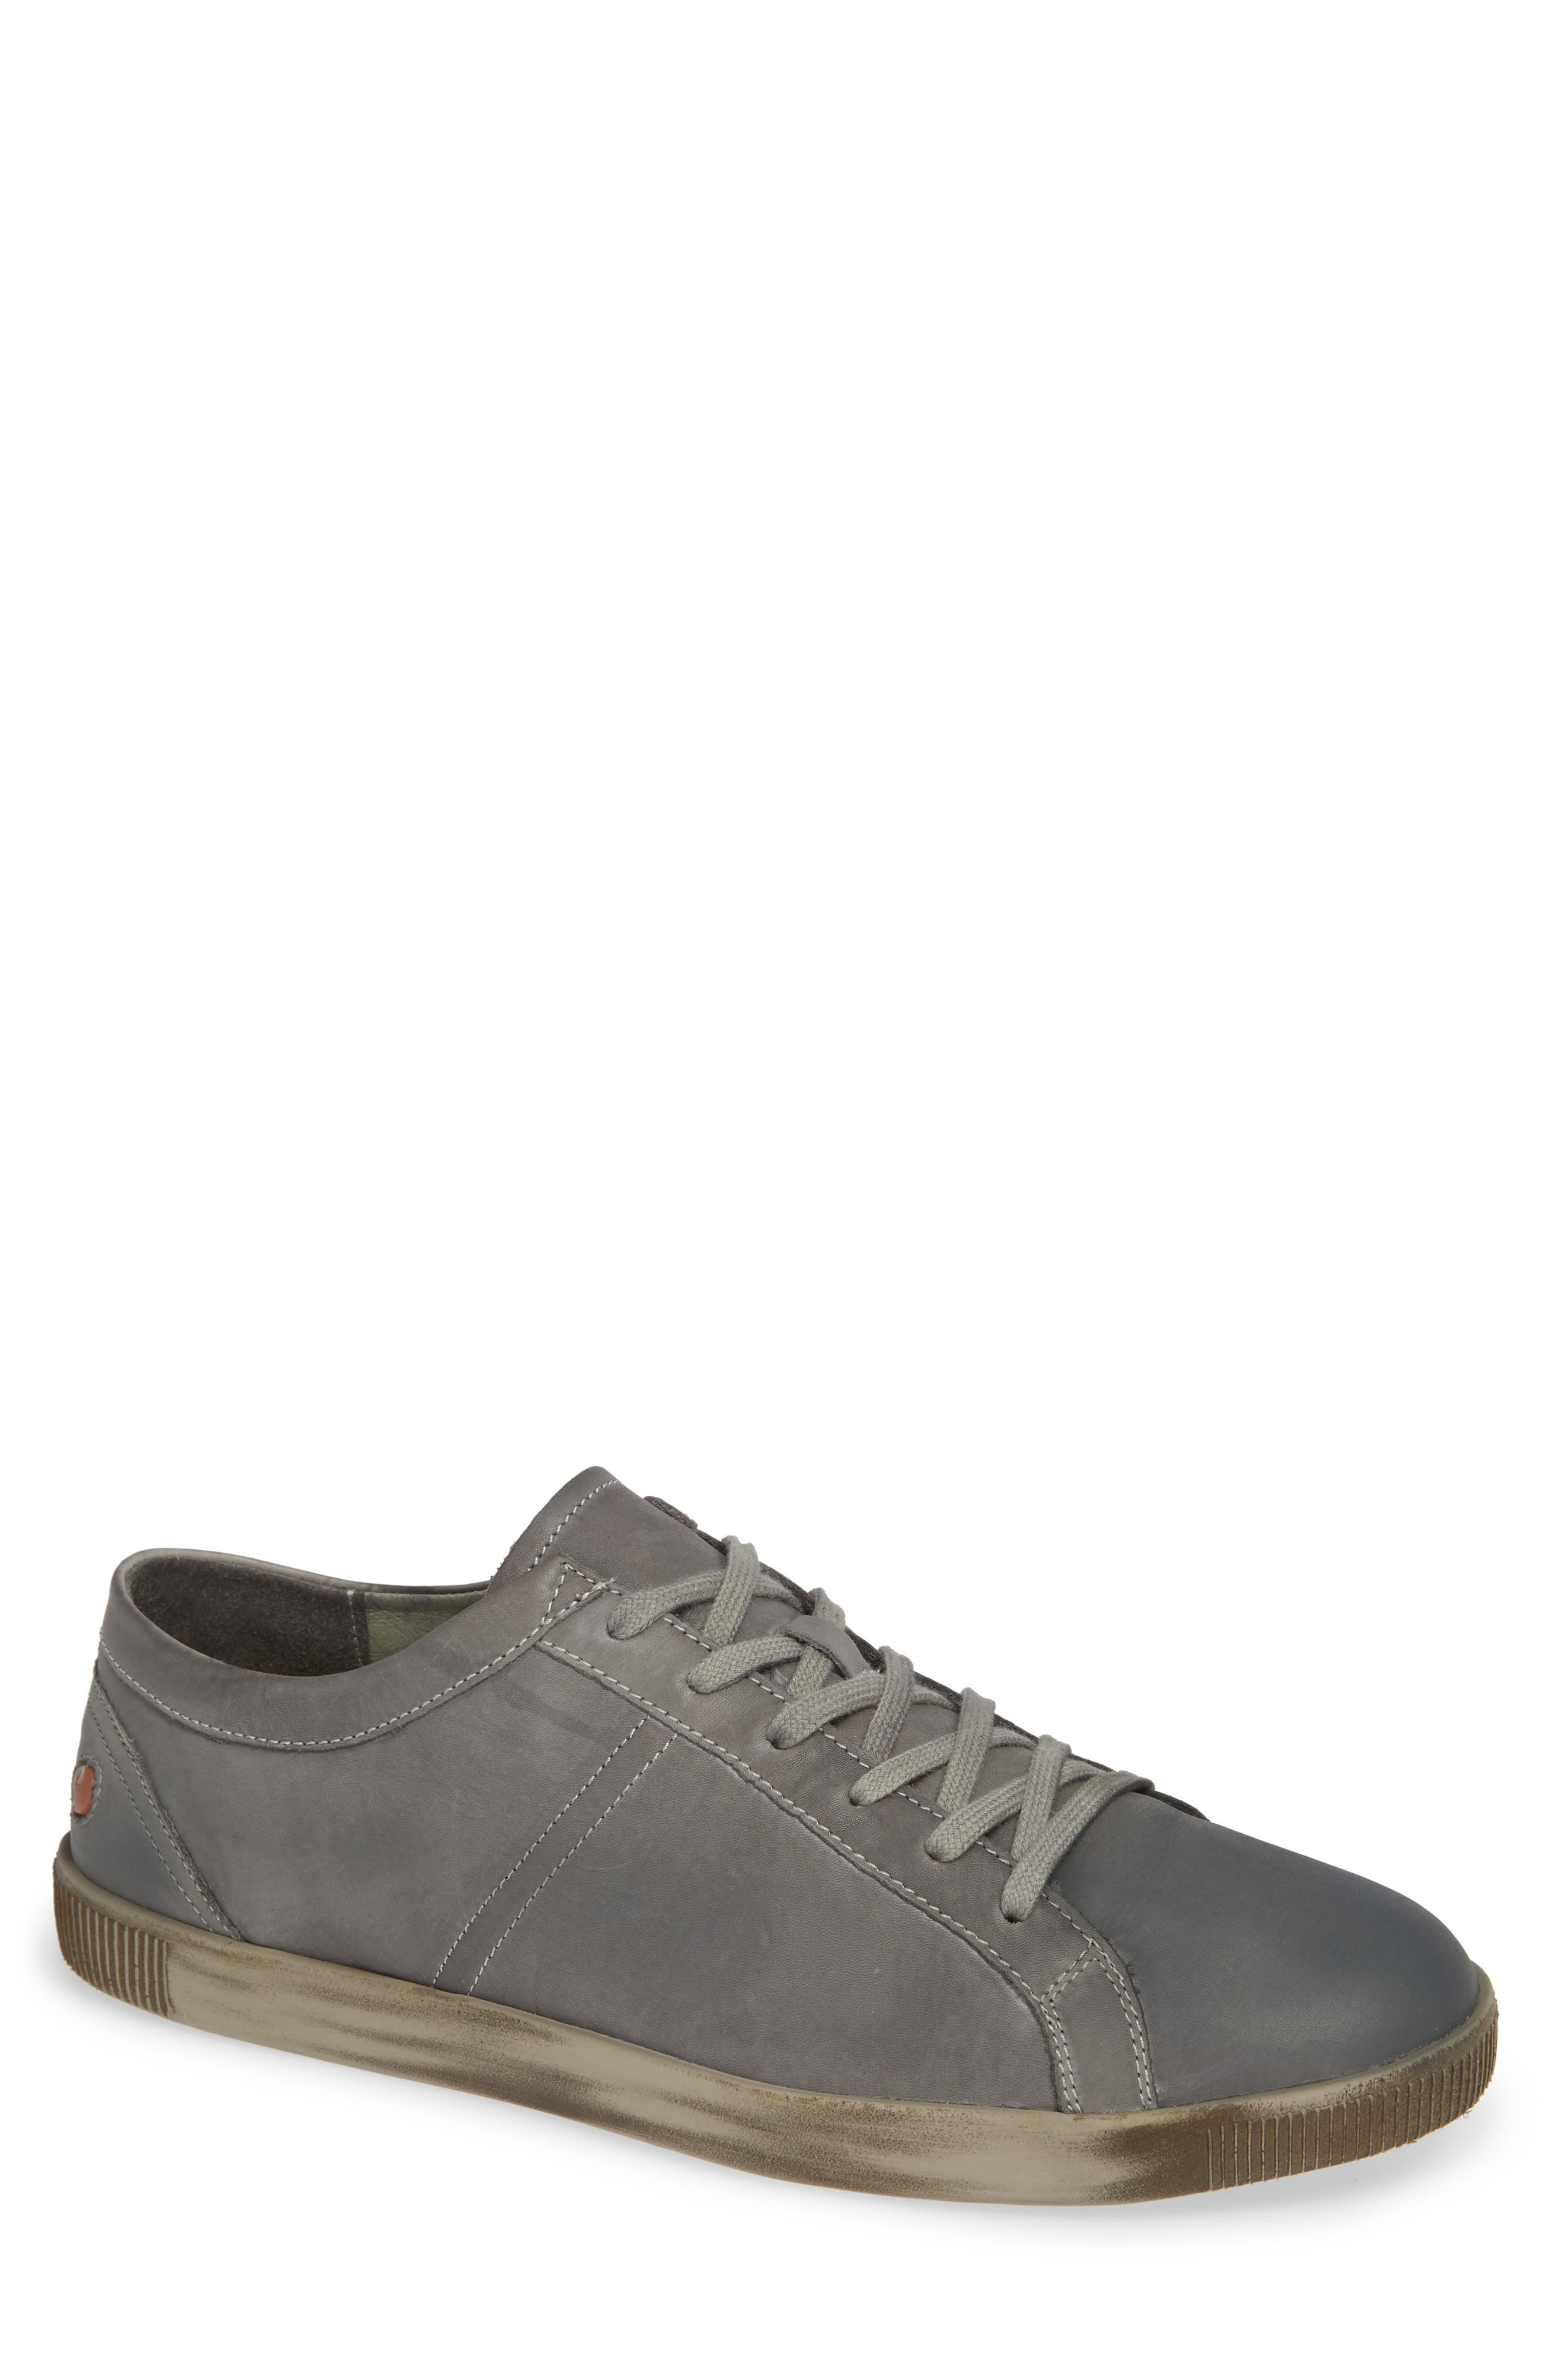 Tom Sneaker,                         Main,                         color, MILITARY WASHED LEATHER